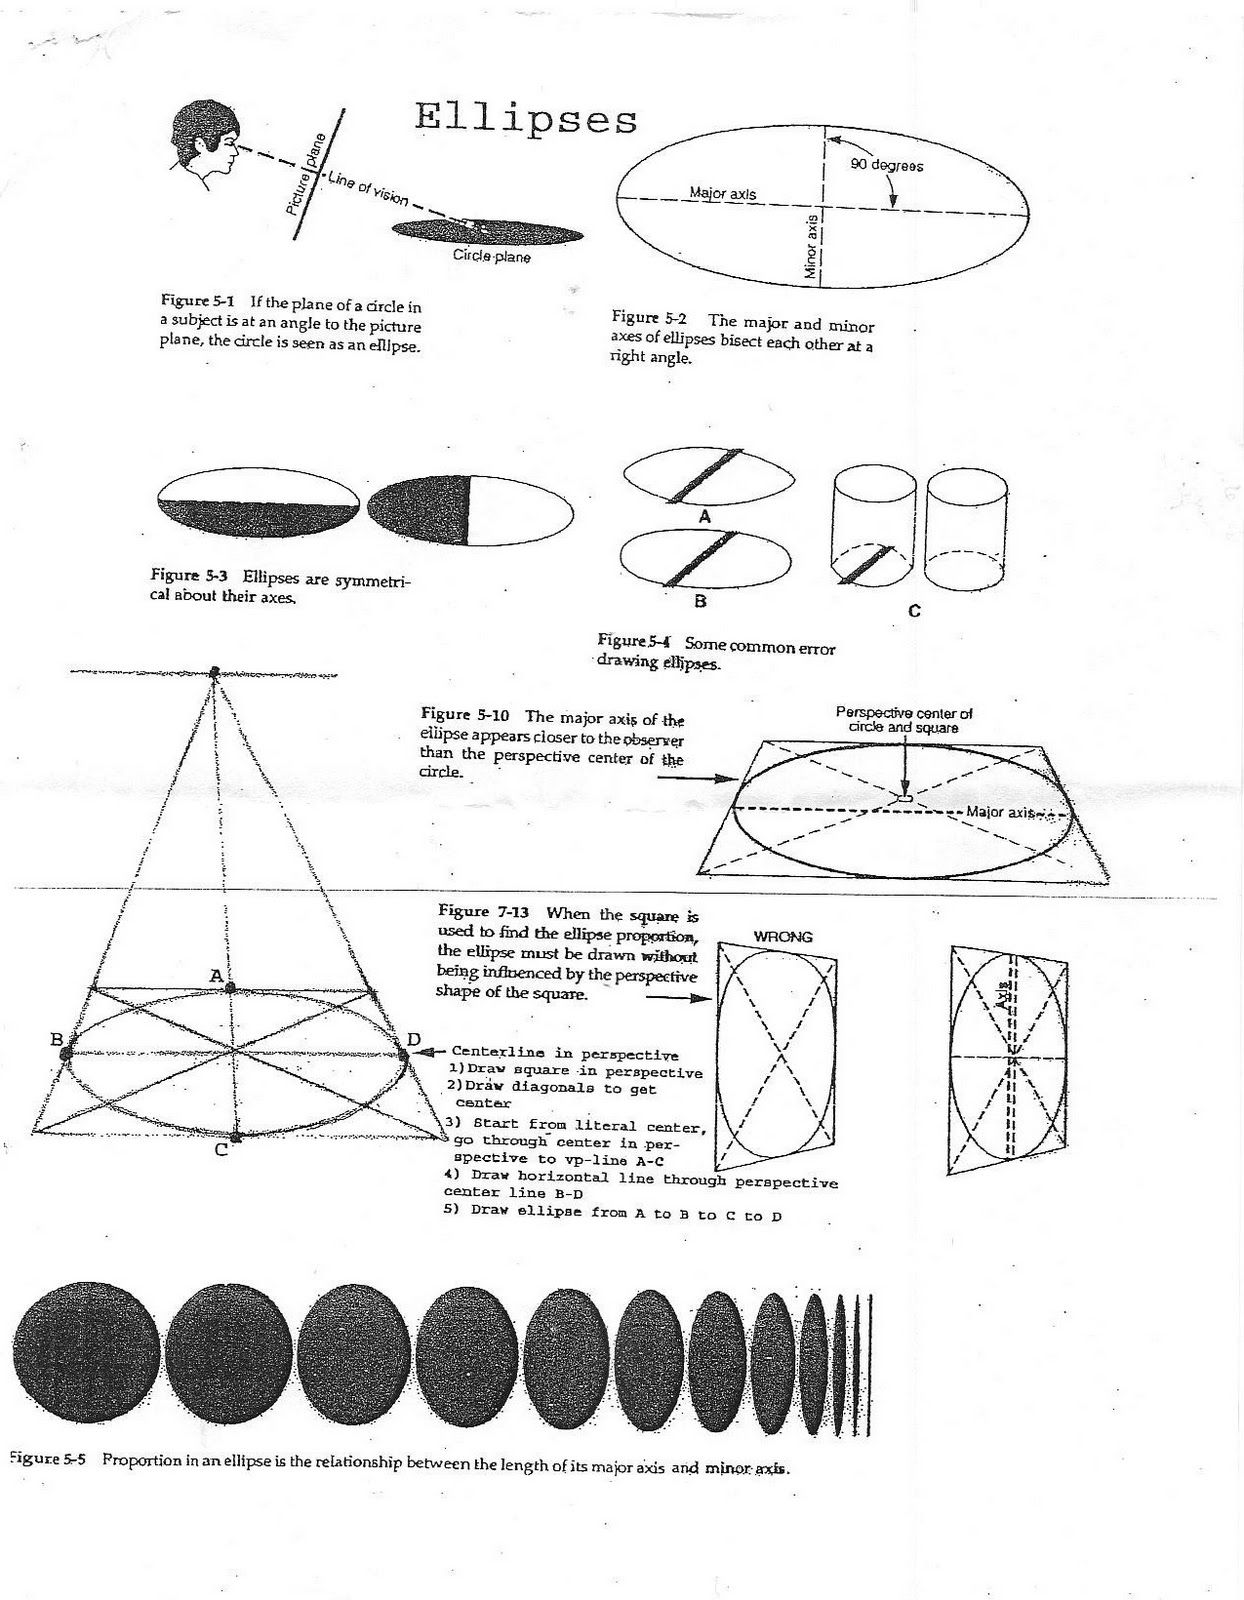 worksheet Ellipses Worksheet onepoint perspective worksheets worksheet by zimmer copyright 5 bing images